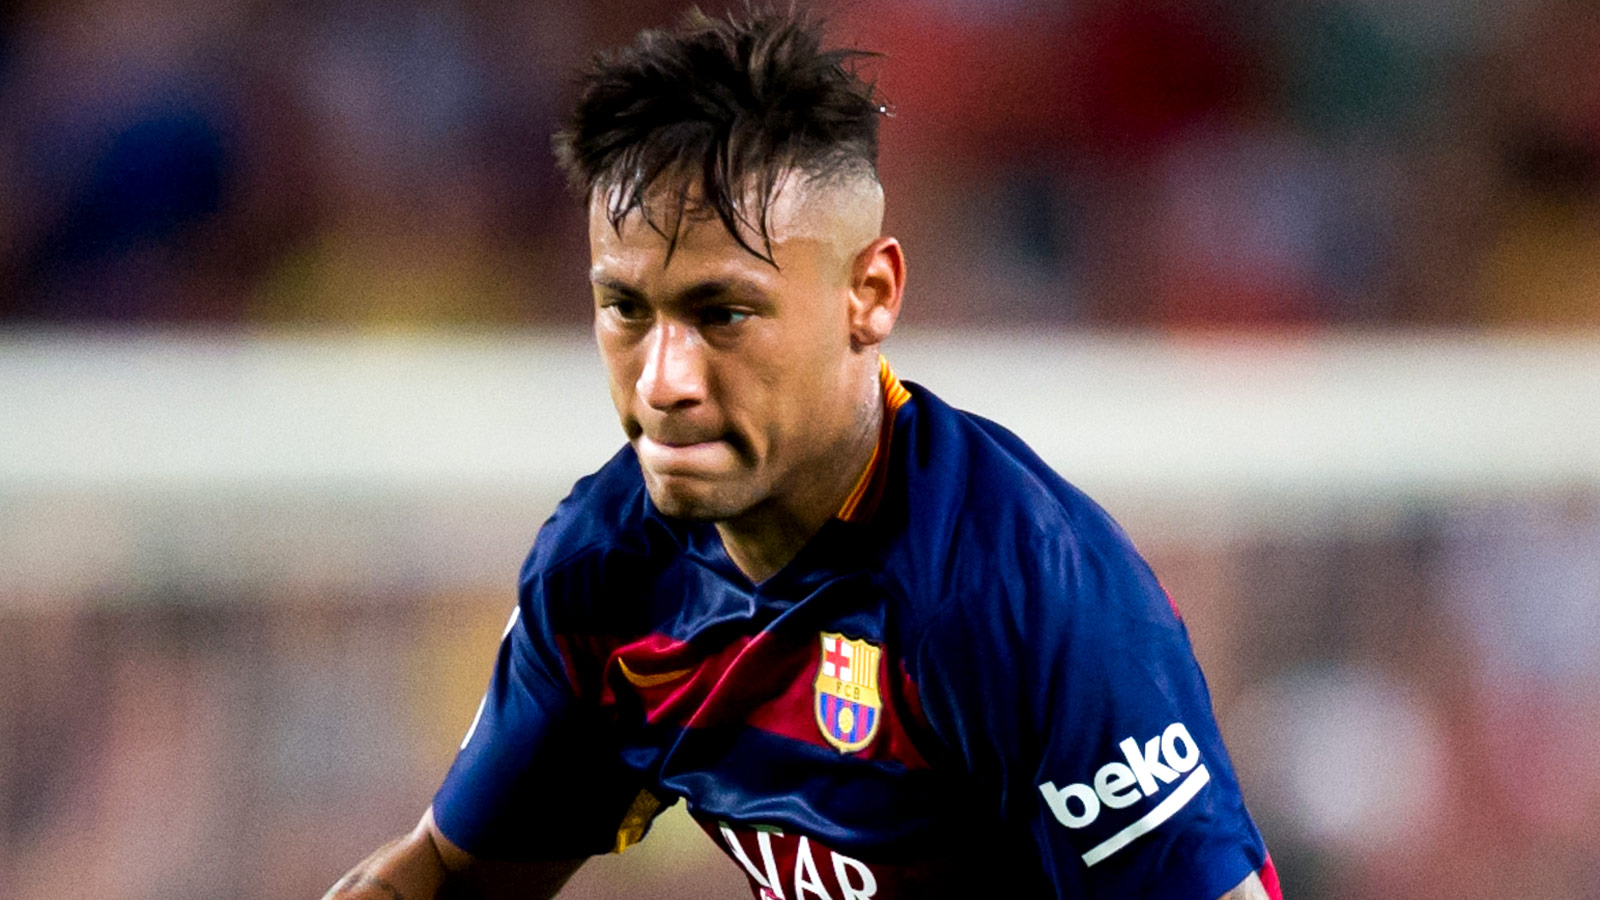 Barcelona set to offer Neymar massive new contract